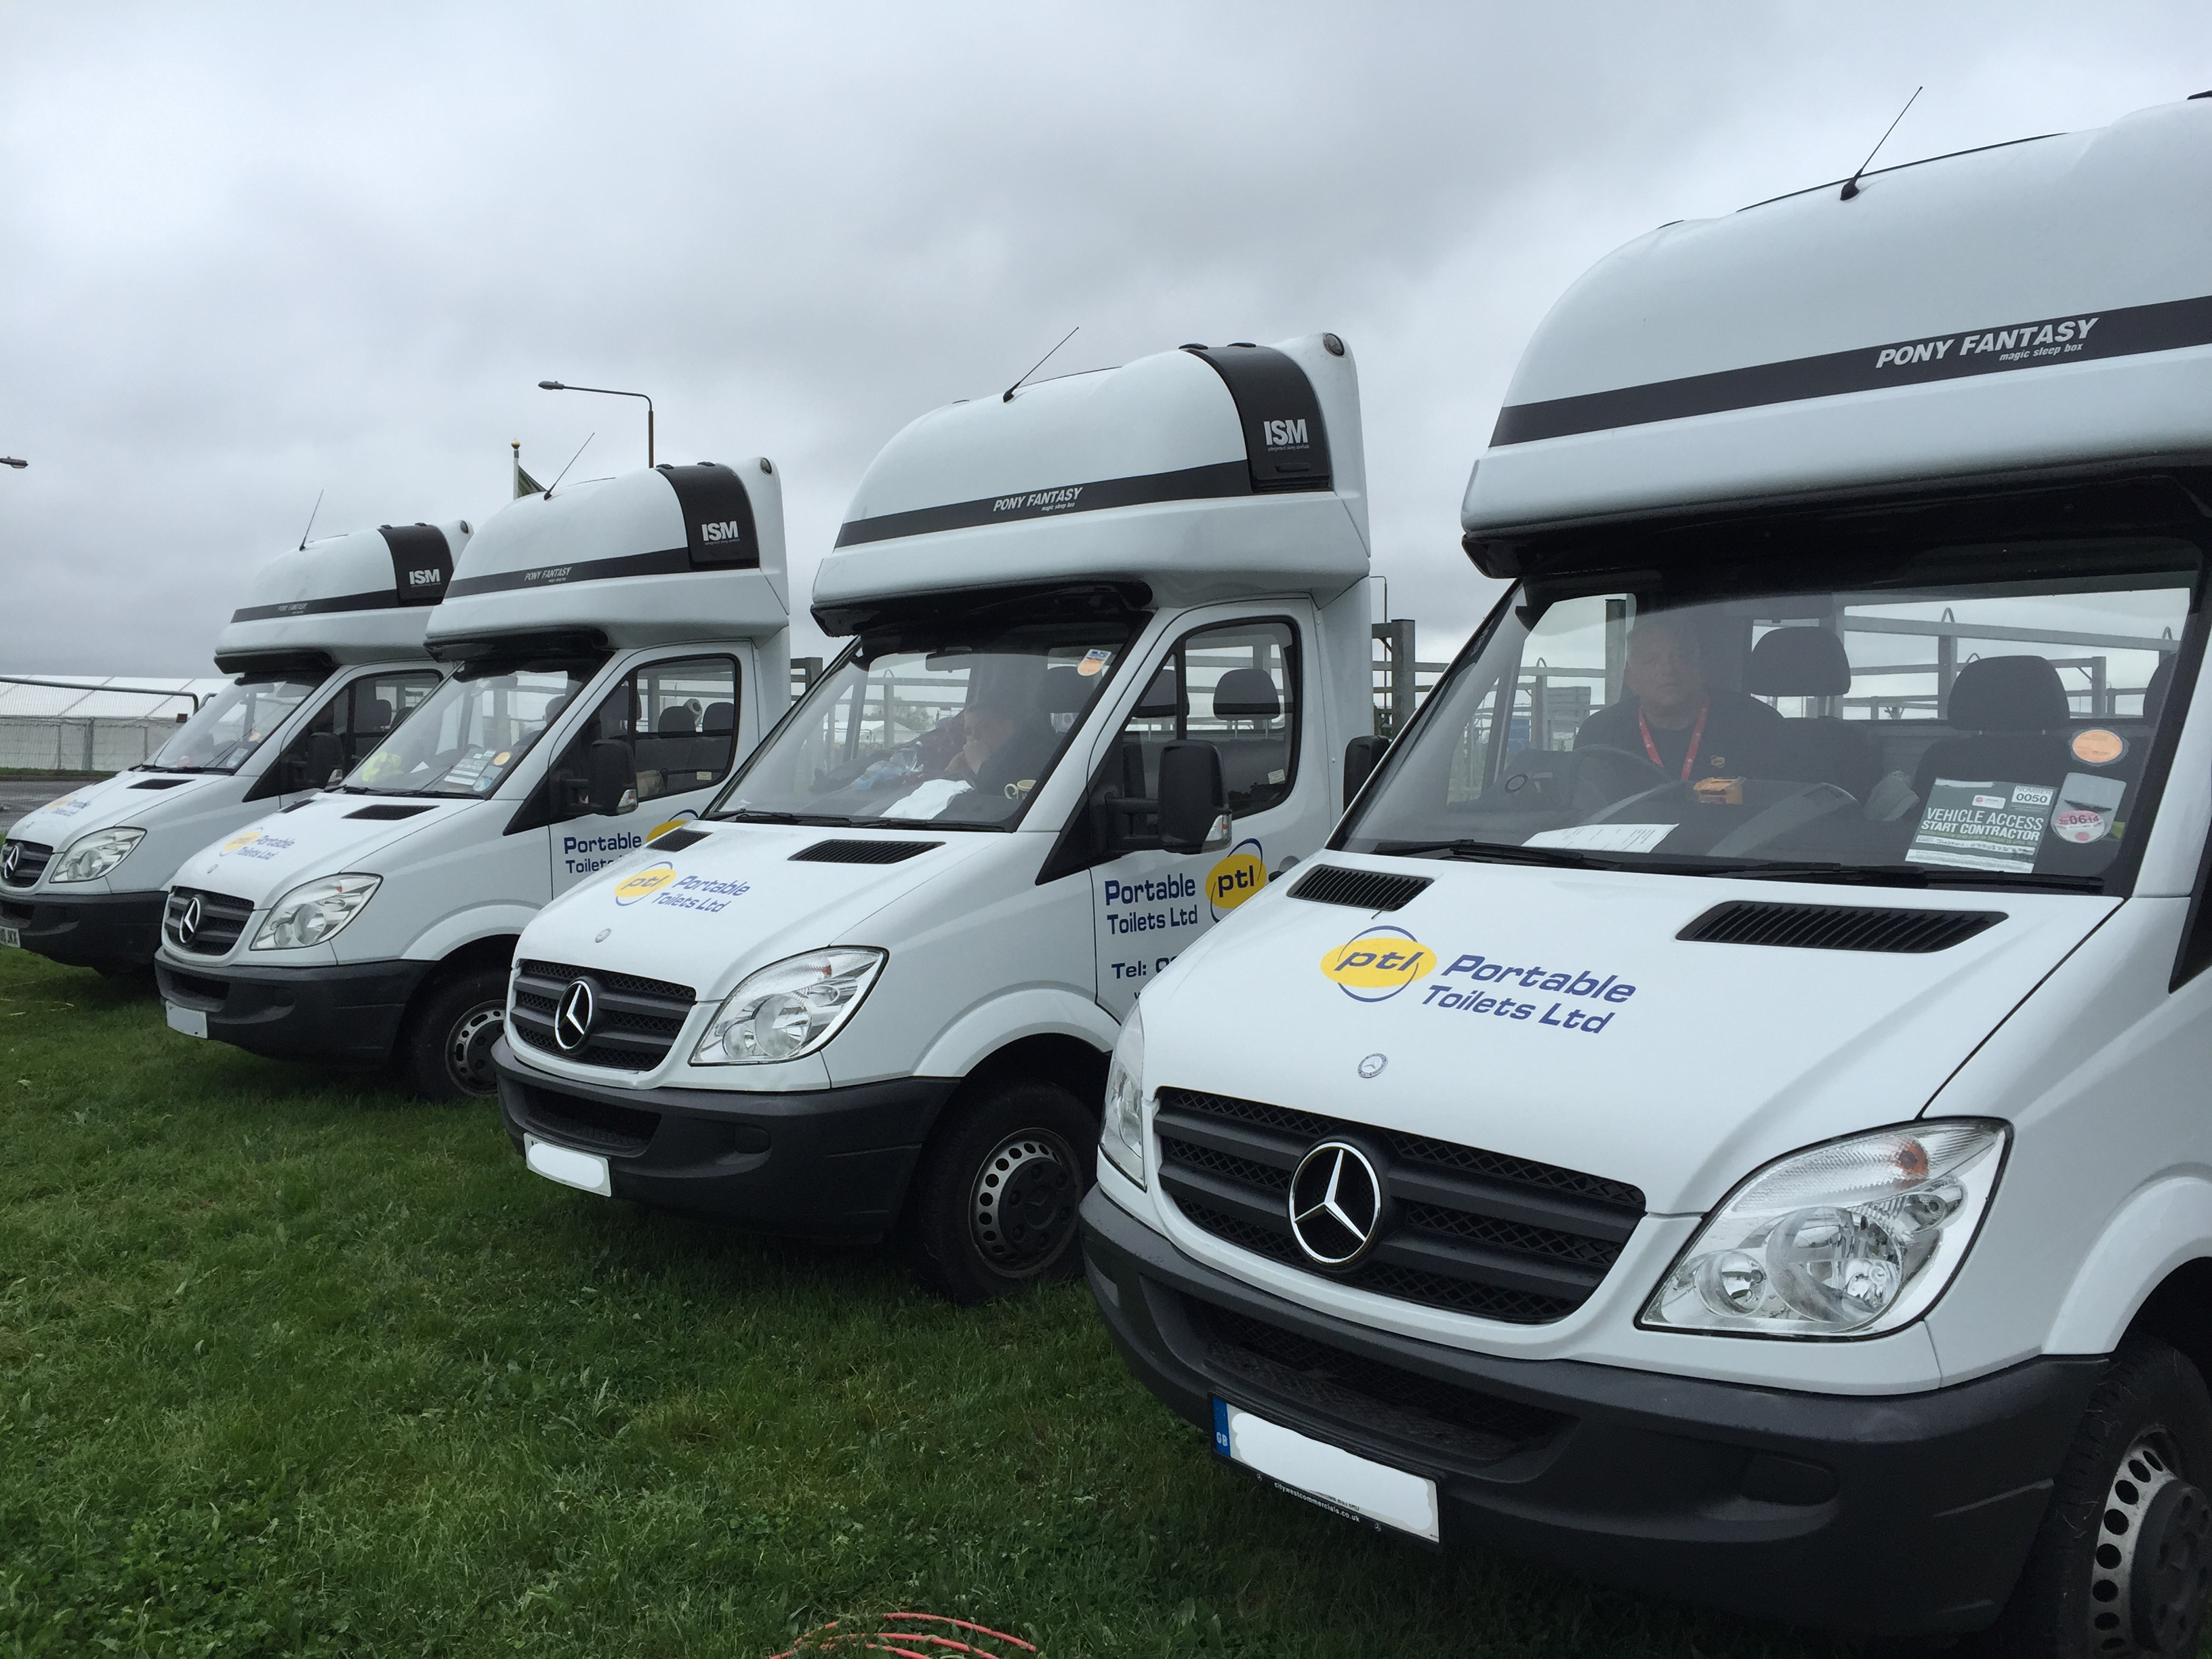 London Marathon Portable Loos 2015!